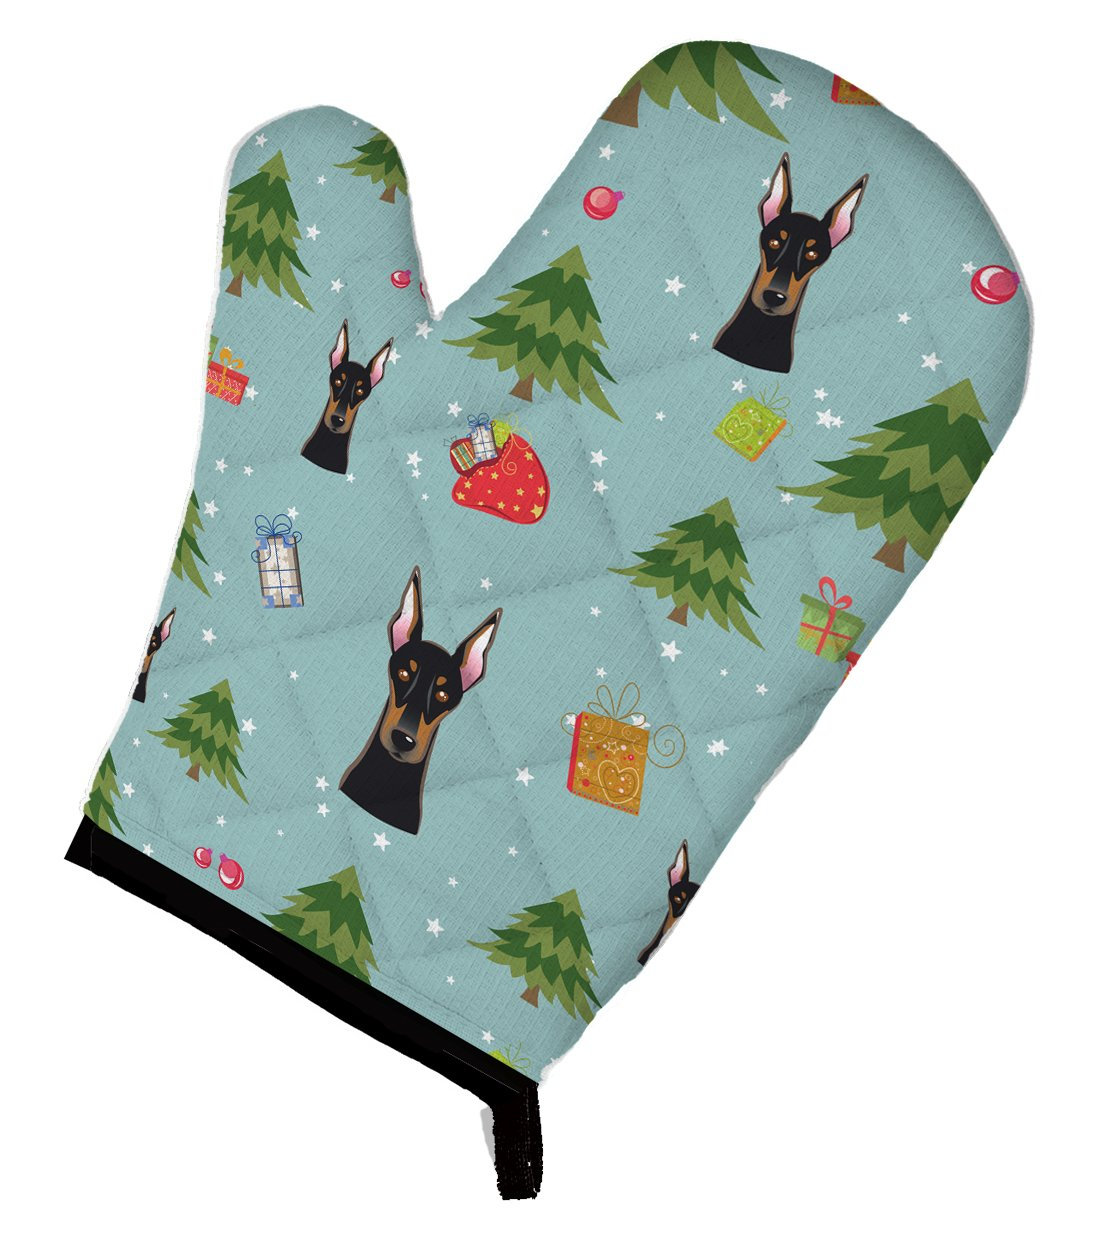 Caroline's Treasures BB5034OVMT Christmas Doberman Pinscher Oven Mitt, 12 by 8.5, Multicolor Caroline' s Treasures 12 by 8.5